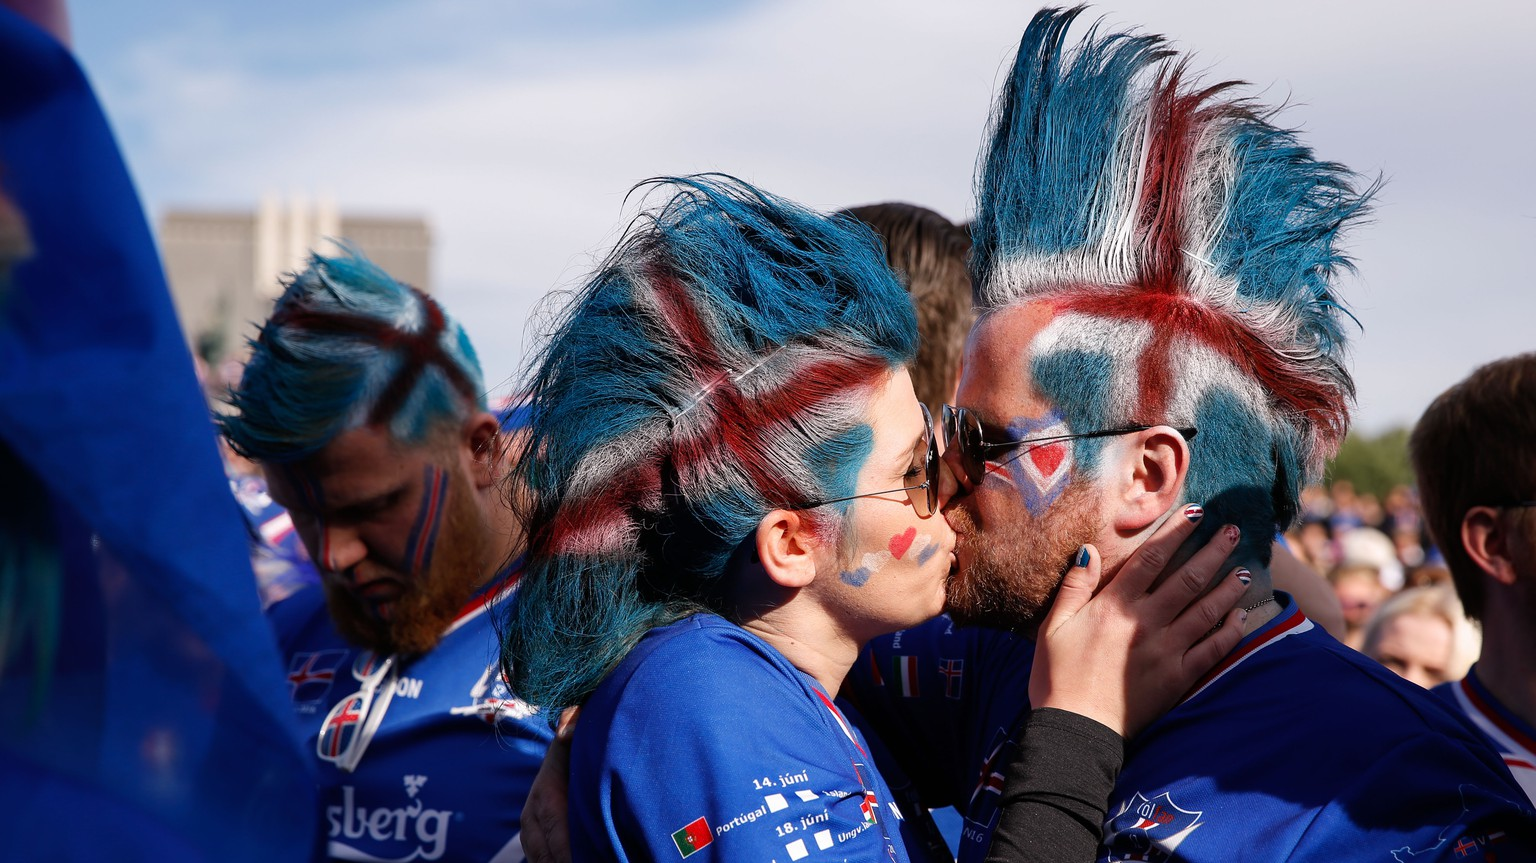 Iceland soccer fans kiss prior to watching the Euro 2016 quarterfinal match between Iceland and France on a large screen in Reykjavik, Iceland, Sunday July 3, 2016. (AP Photo/Brynjar Gunnarsson)